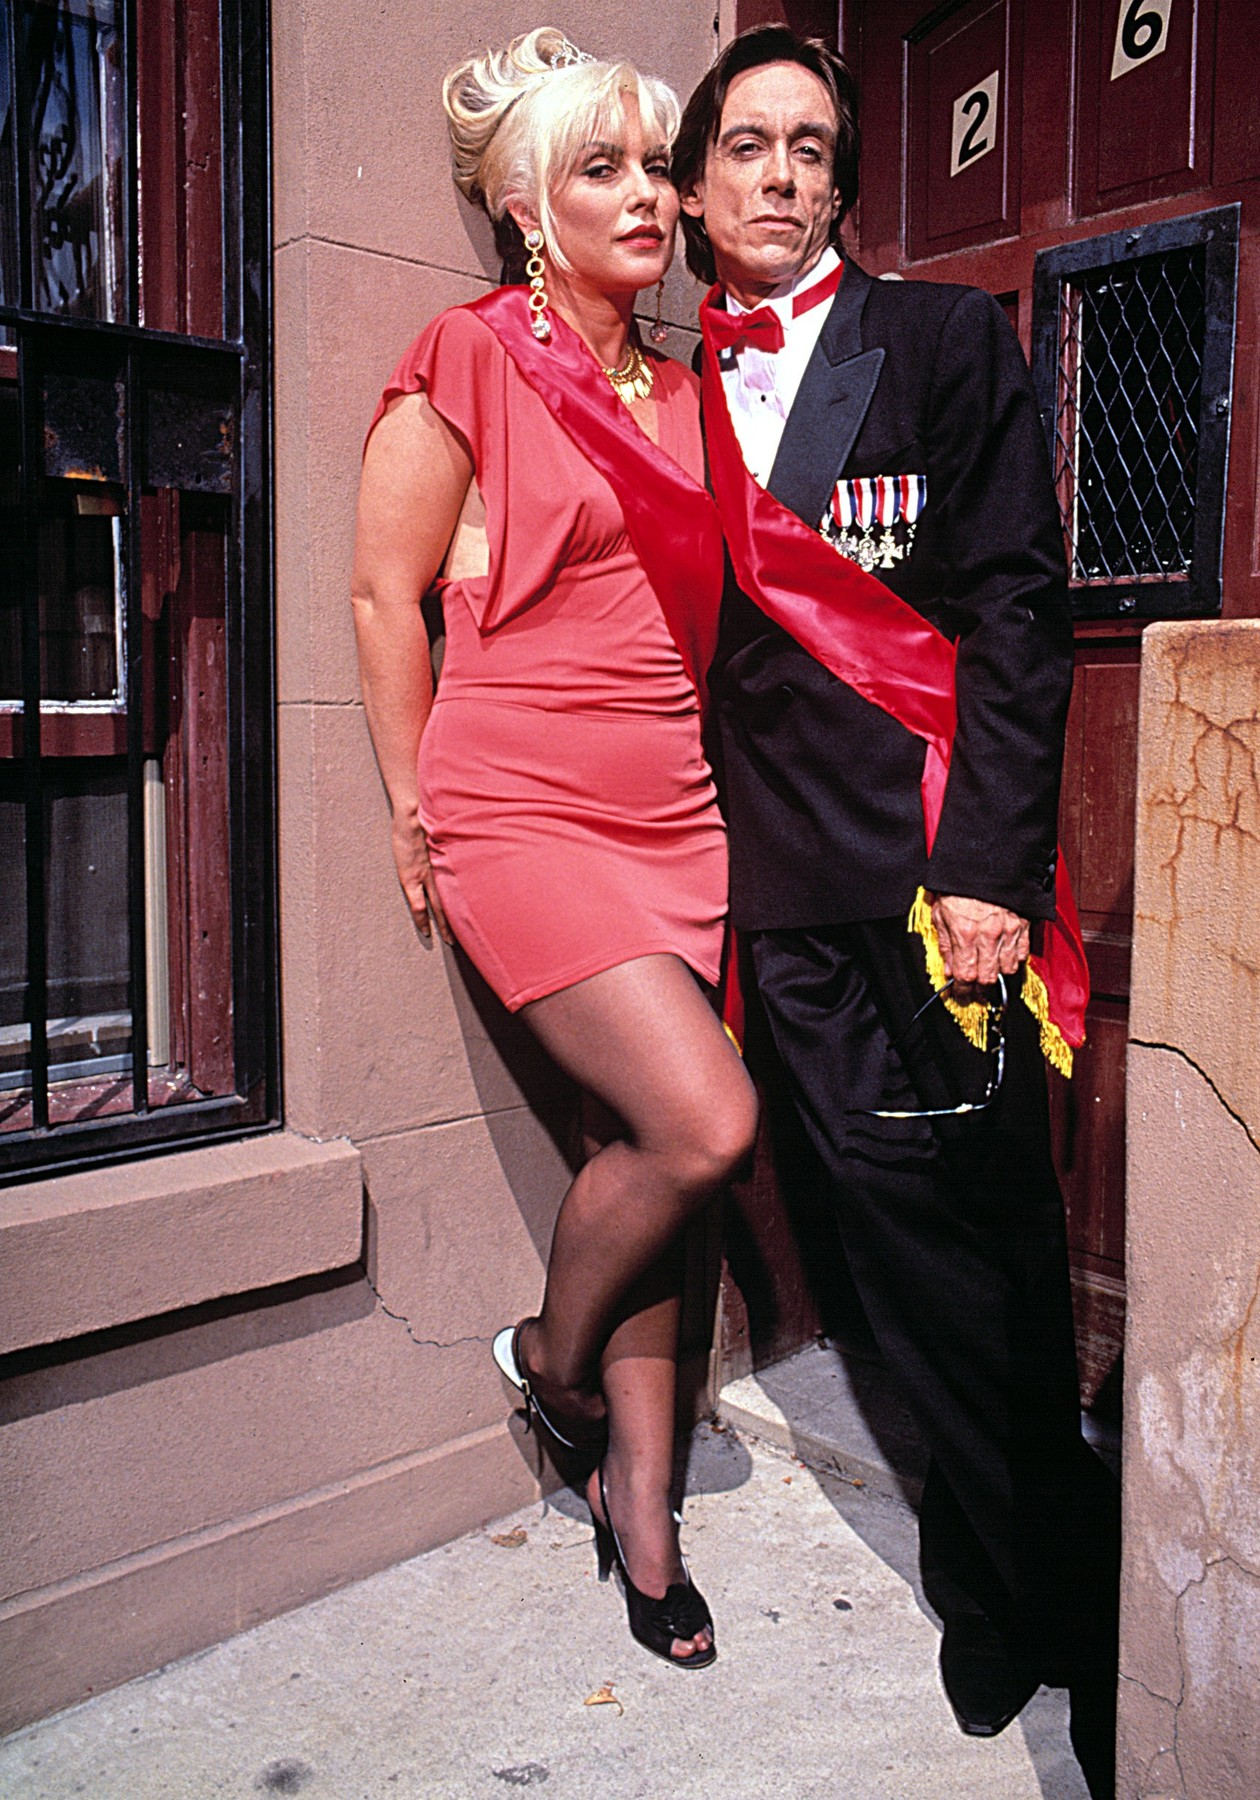 RED HOT AND BLUE, Debbie Harry, Iggy Pop, 1990,, Image: 330890426, License: Rights-managed, Restrictions: For usage credit please use; Courtesy Everett Collection, Model Release: no, Credit line: ABC / Everett / Profimedia